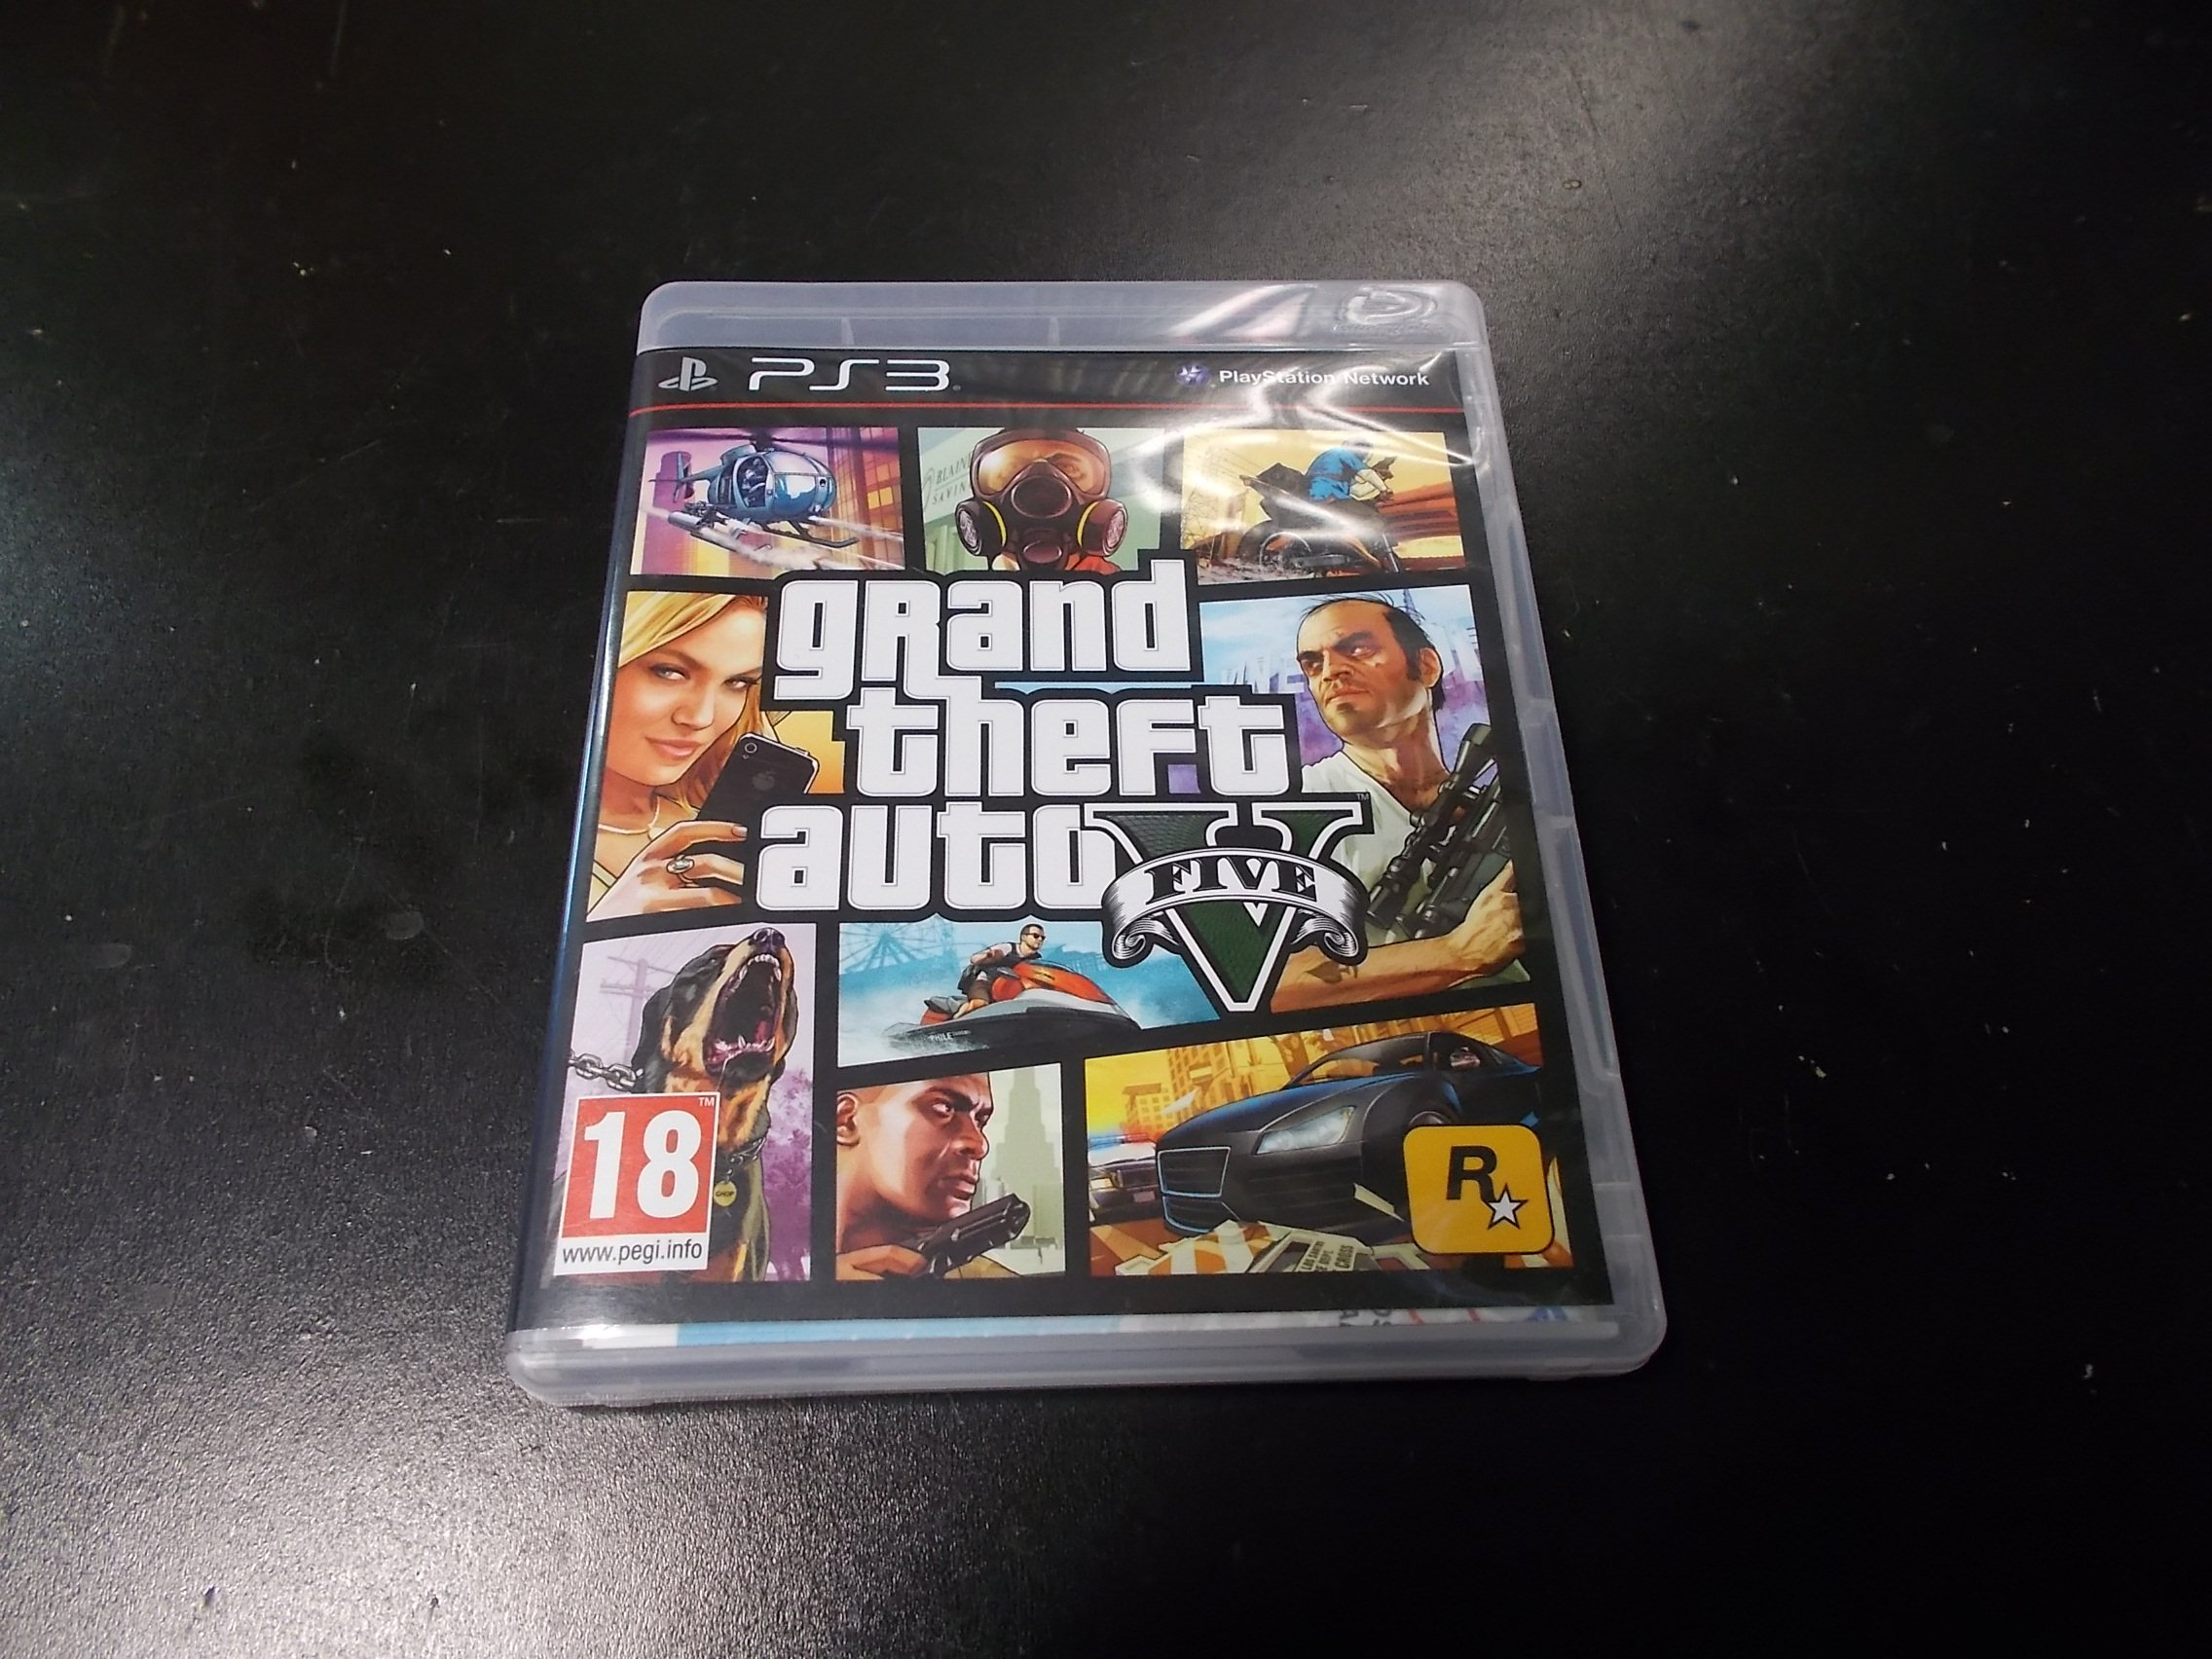 Grand Theft Auto GTA V - GRA Ps3 - Opole 0239